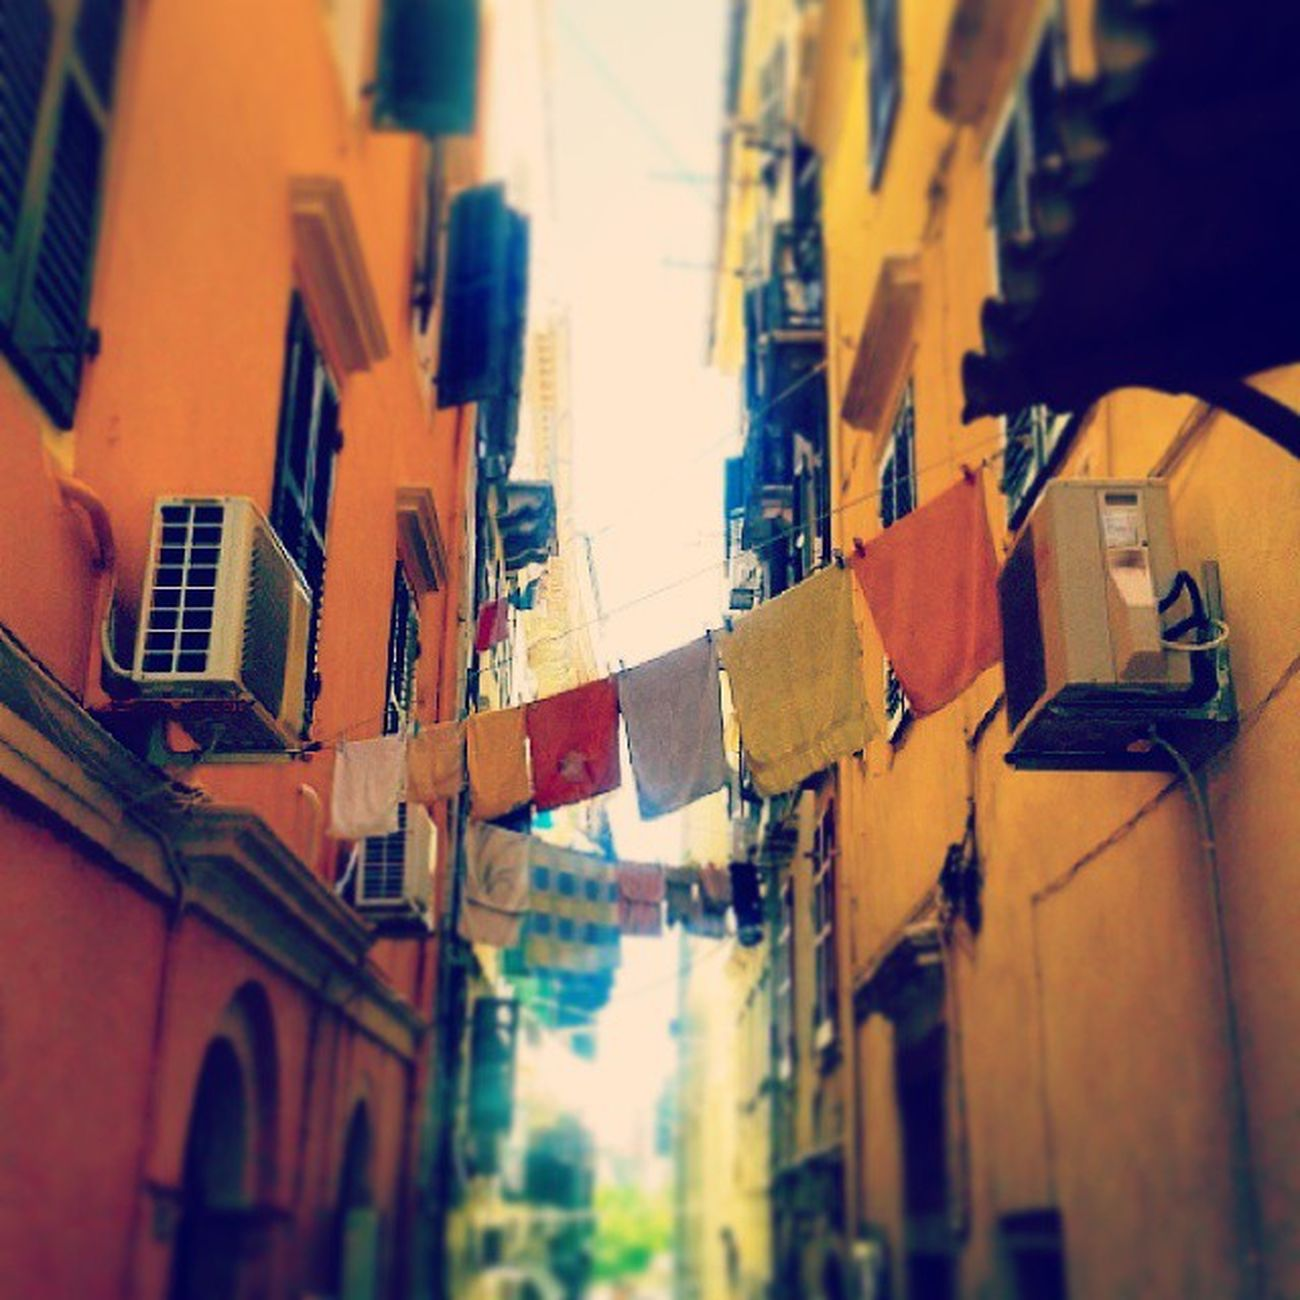 Greek streets 3 Corfu Toyalleyways Colours greece summer oldtown